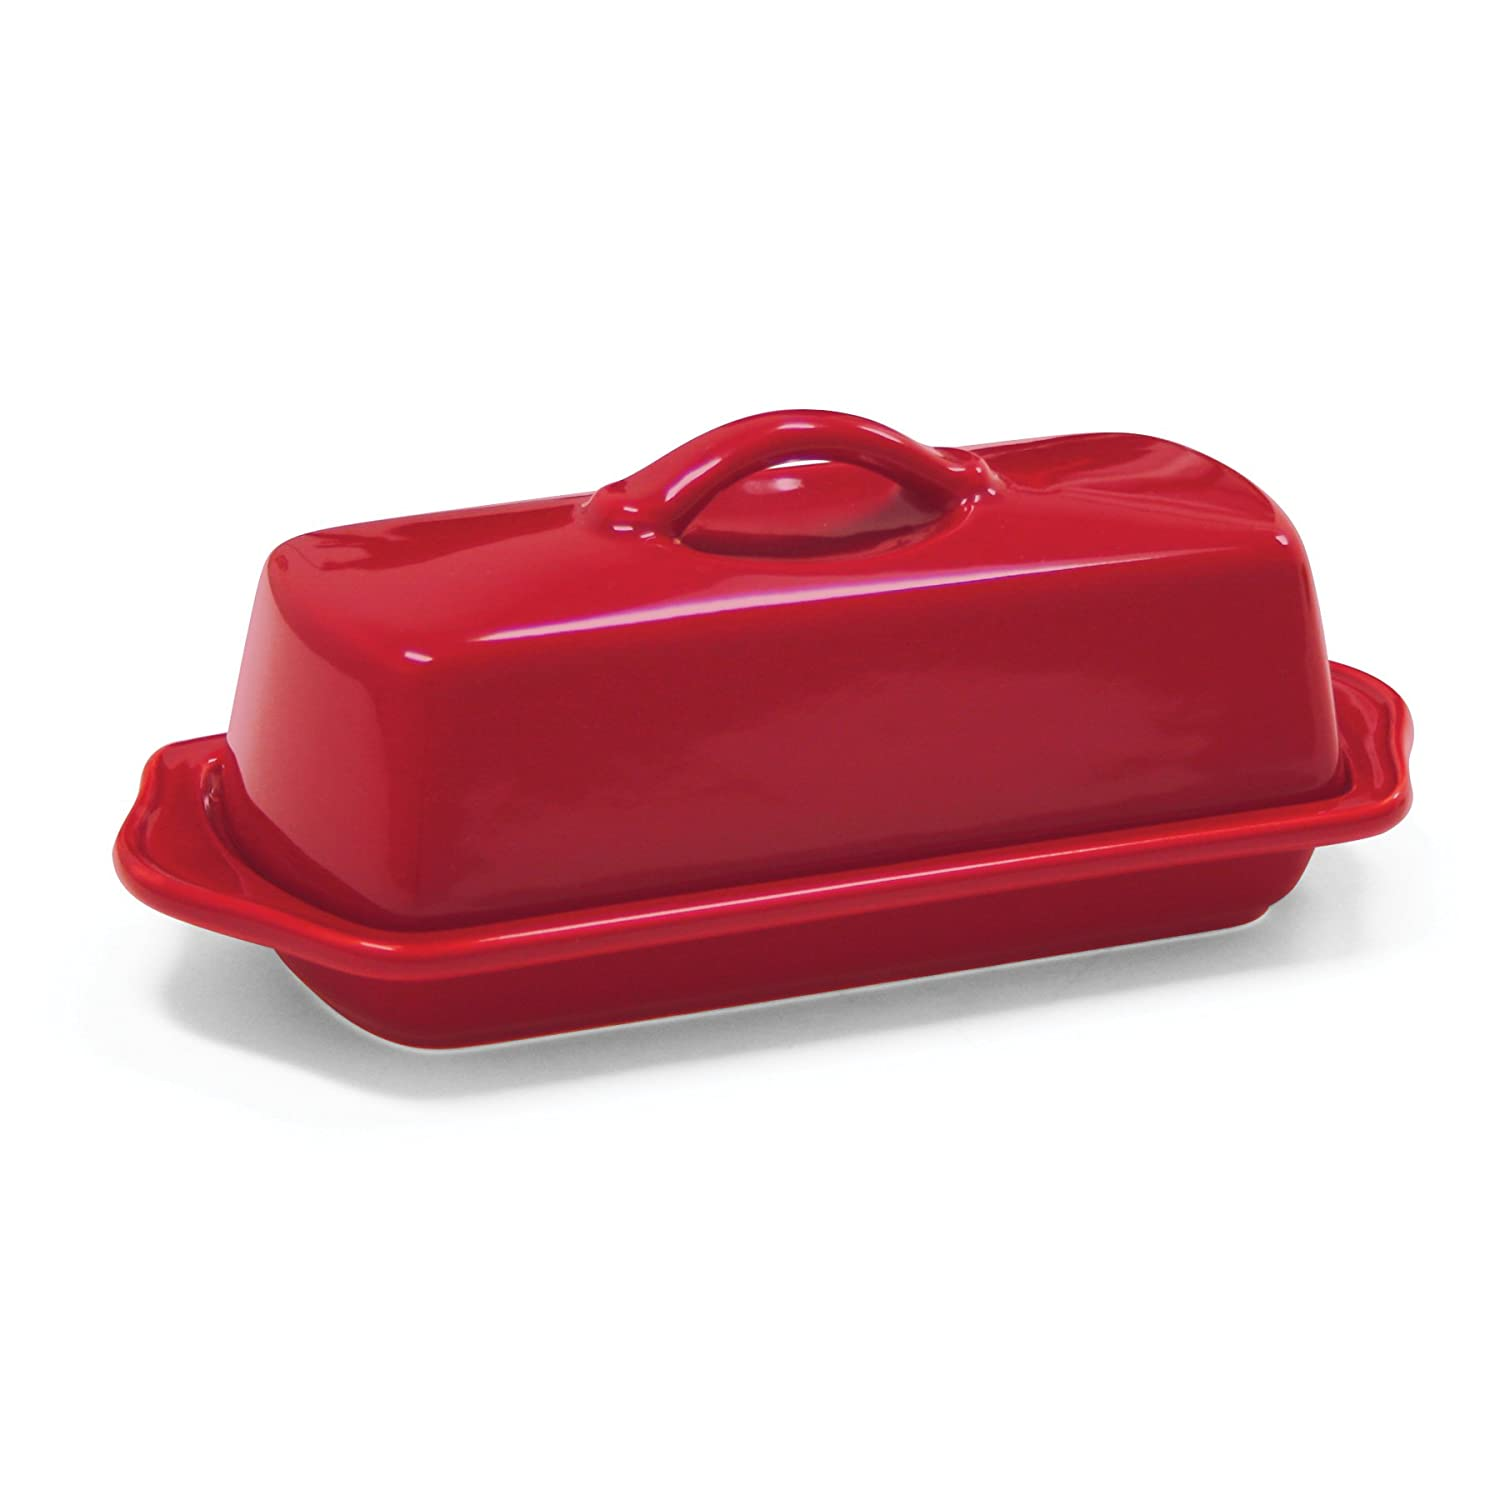 Chantal Full Size Butter Dish, Aqua 93-TVBD-1-AQ